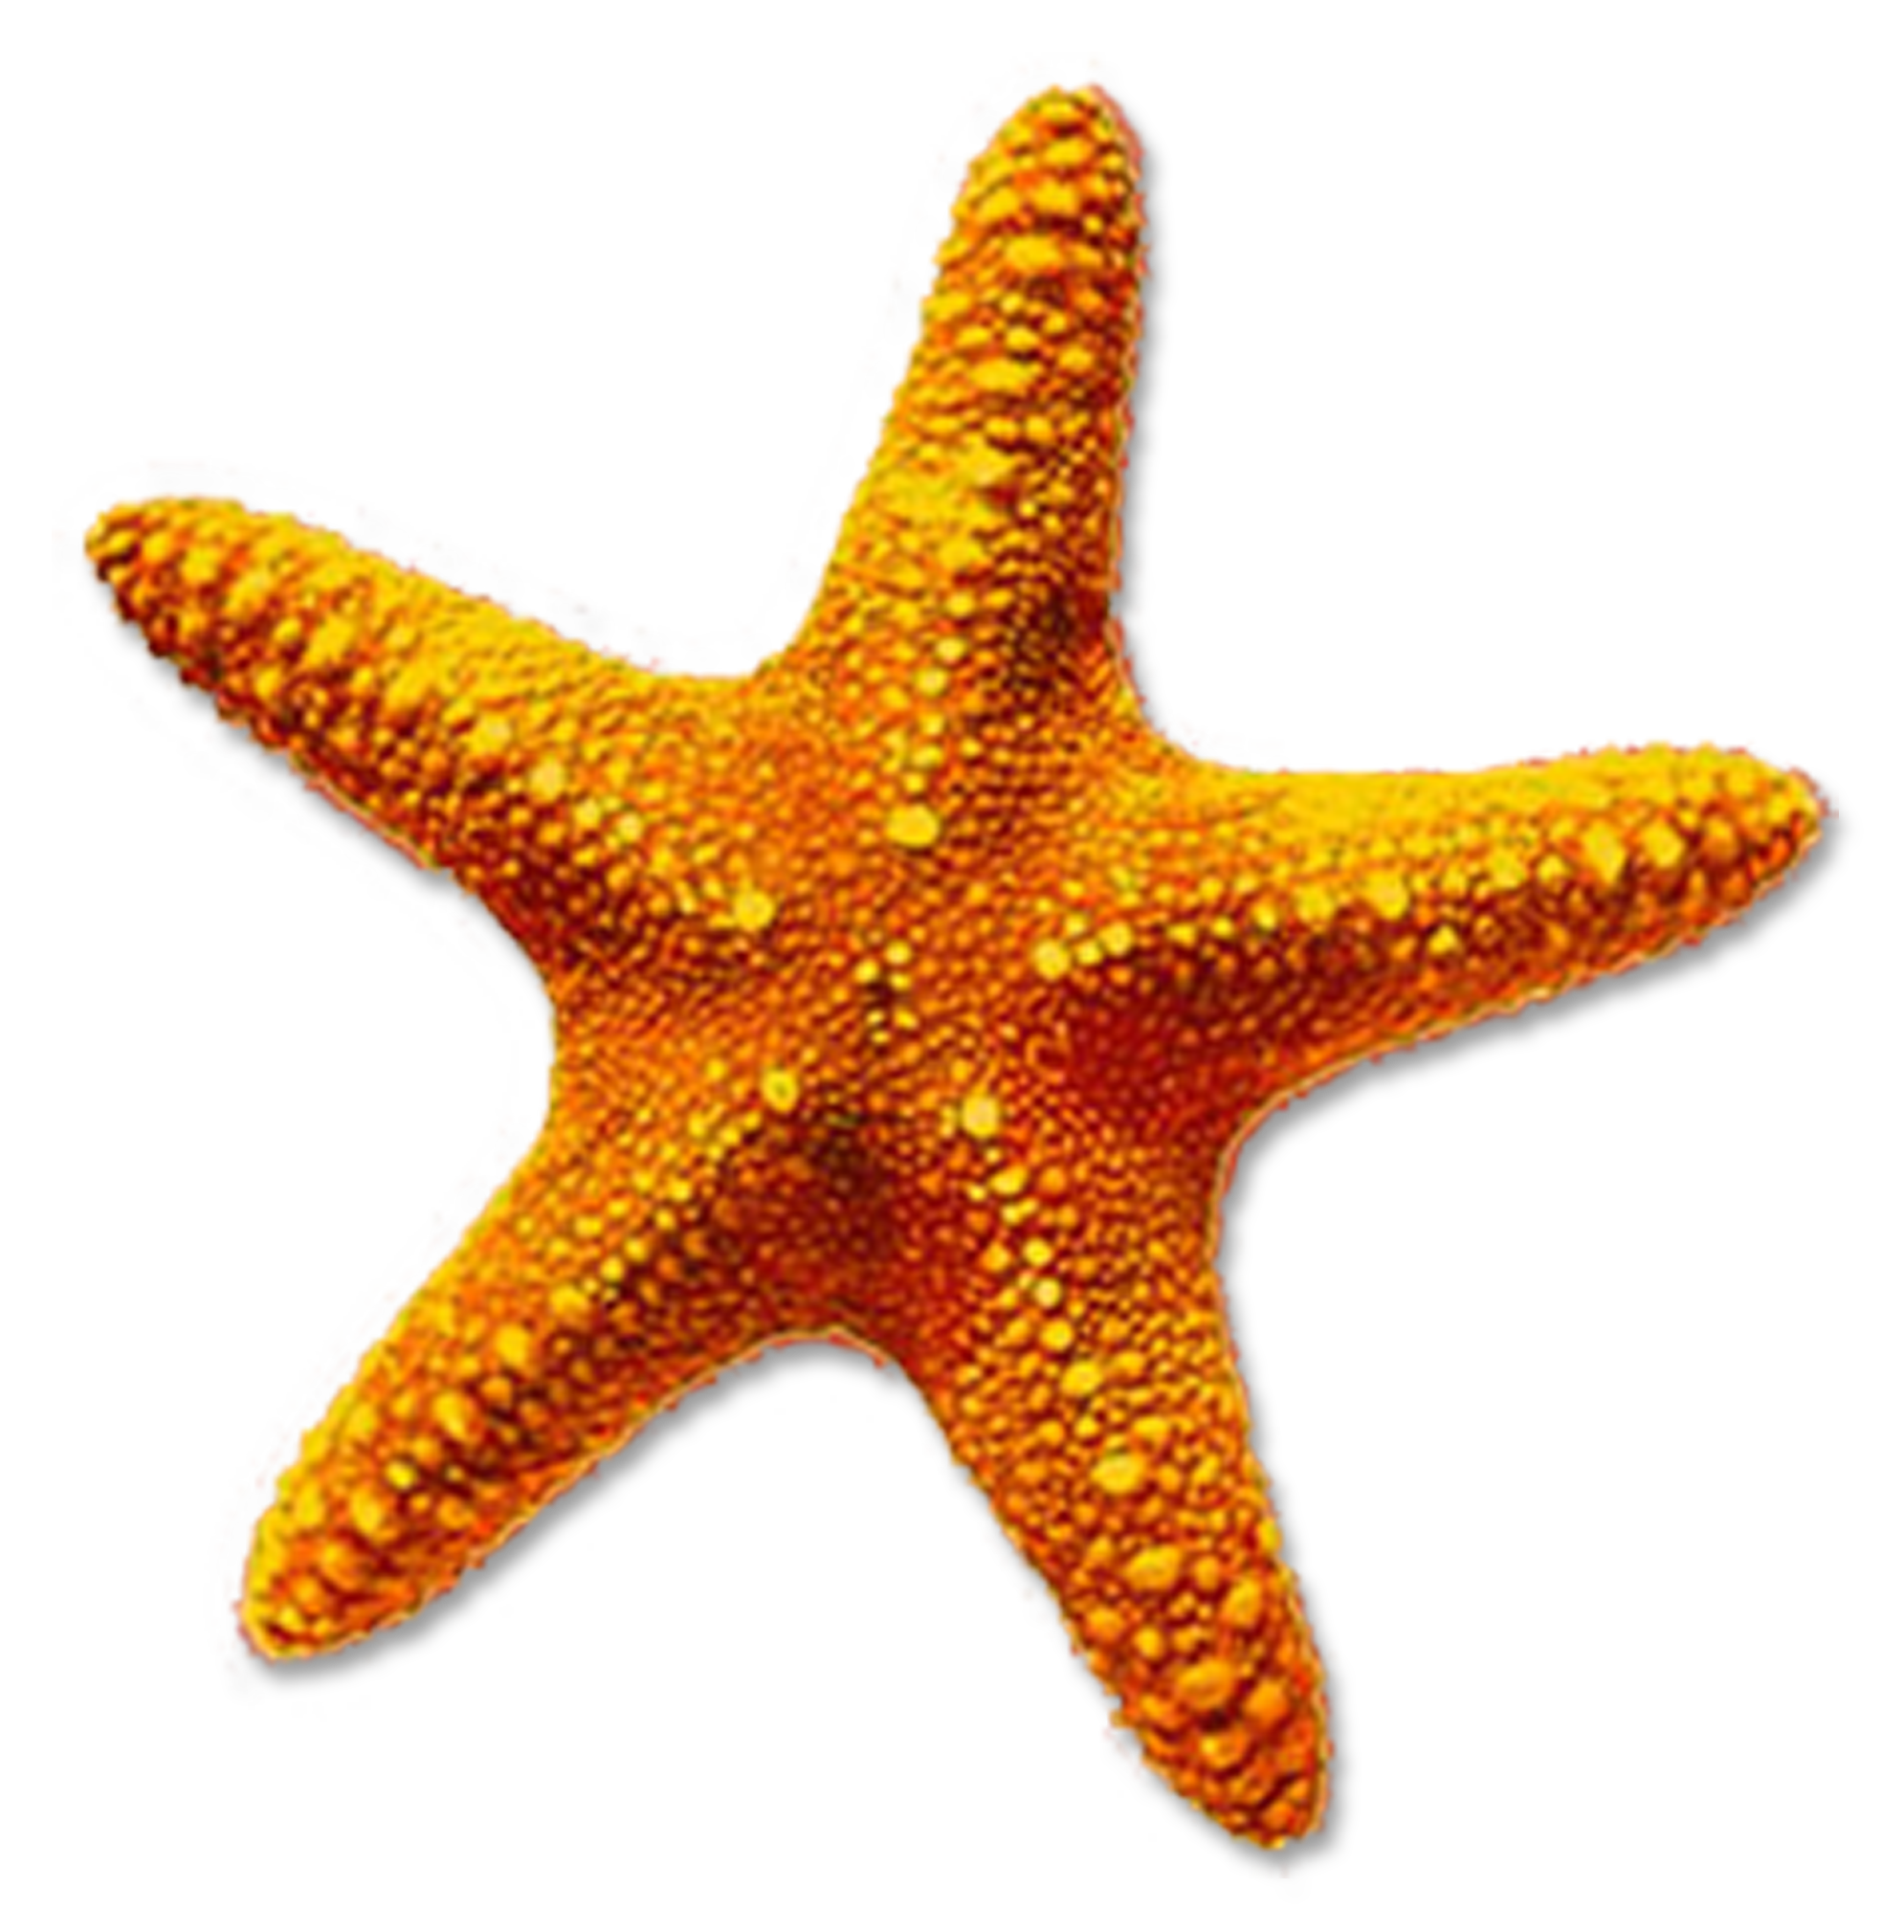 Star fish clipart black and white image transparent stock Starfish PNG Transparent Starfish.PNG Images. | PlusPNG image transparent stock